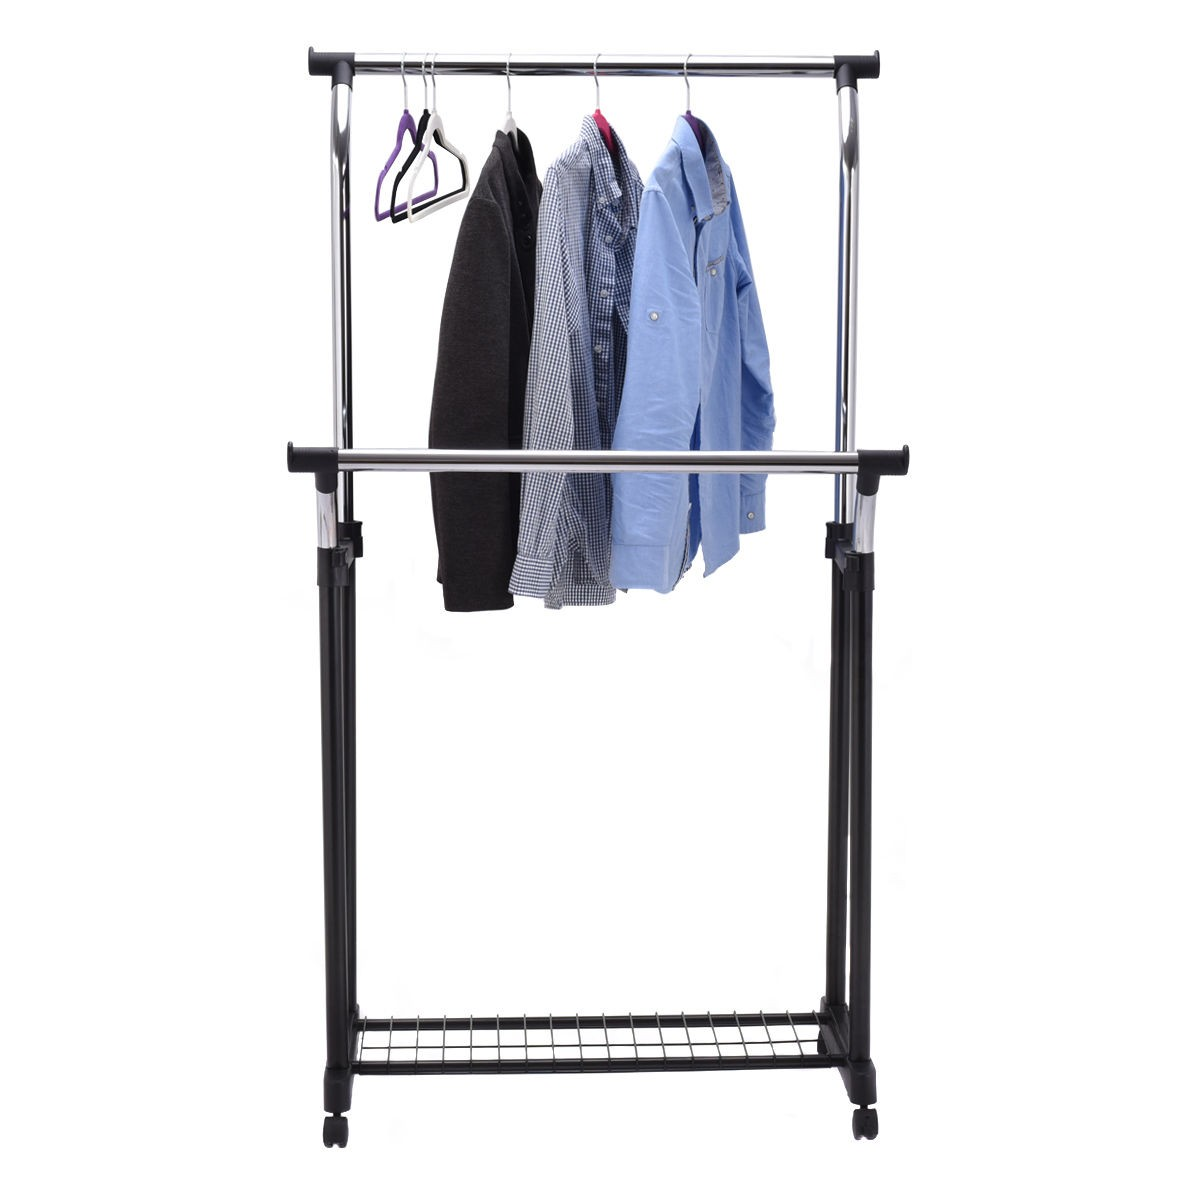 adjustable double rail garment rack portable rolling clothes hanger w shoe rack 612720687890 ebay. Black Bedroom Furniture Sets. Home Design Ideas